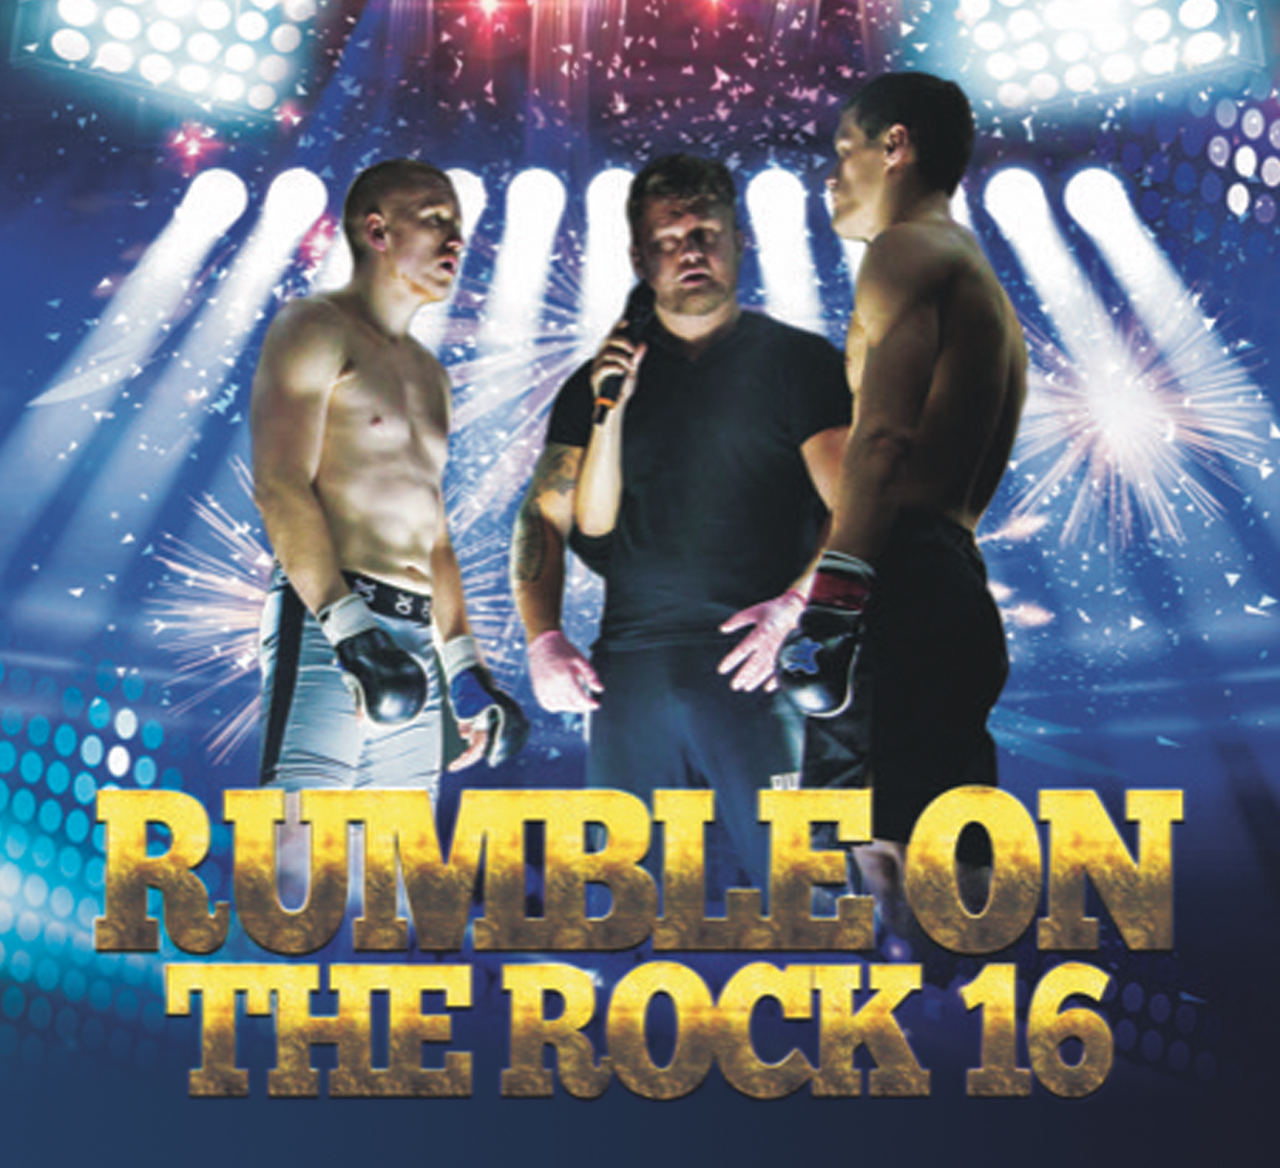 Rumble on the Rock 16